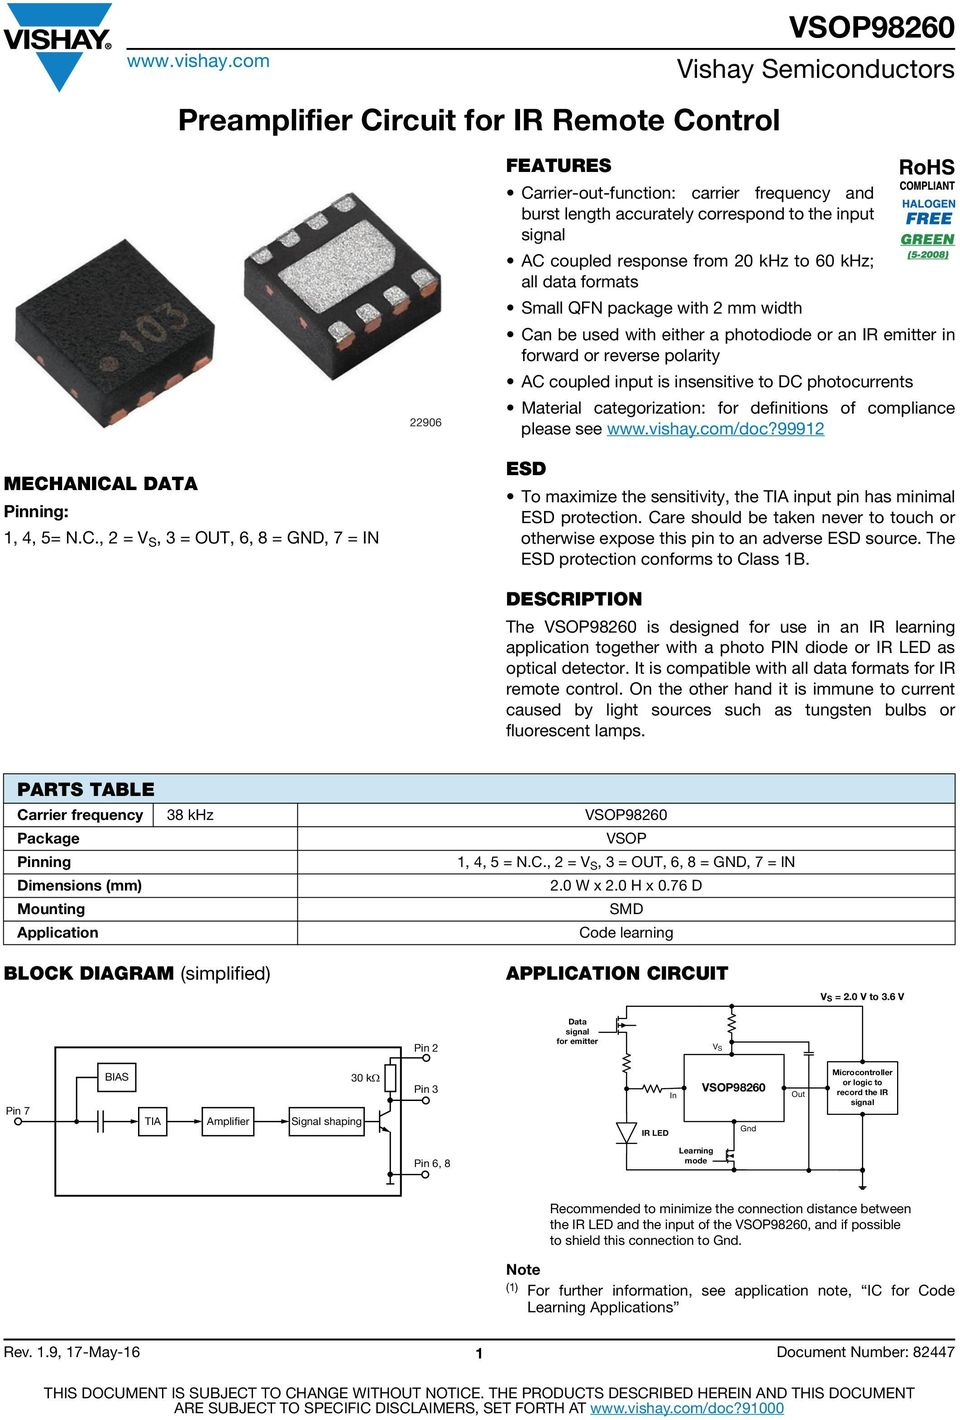 Preamplifier Circuit For Ir Remote Control Pdf Detect The Modulation Through An Accoupled Phototransistor Categorization Definitions Of Compliance Please See Vishaycom Doc